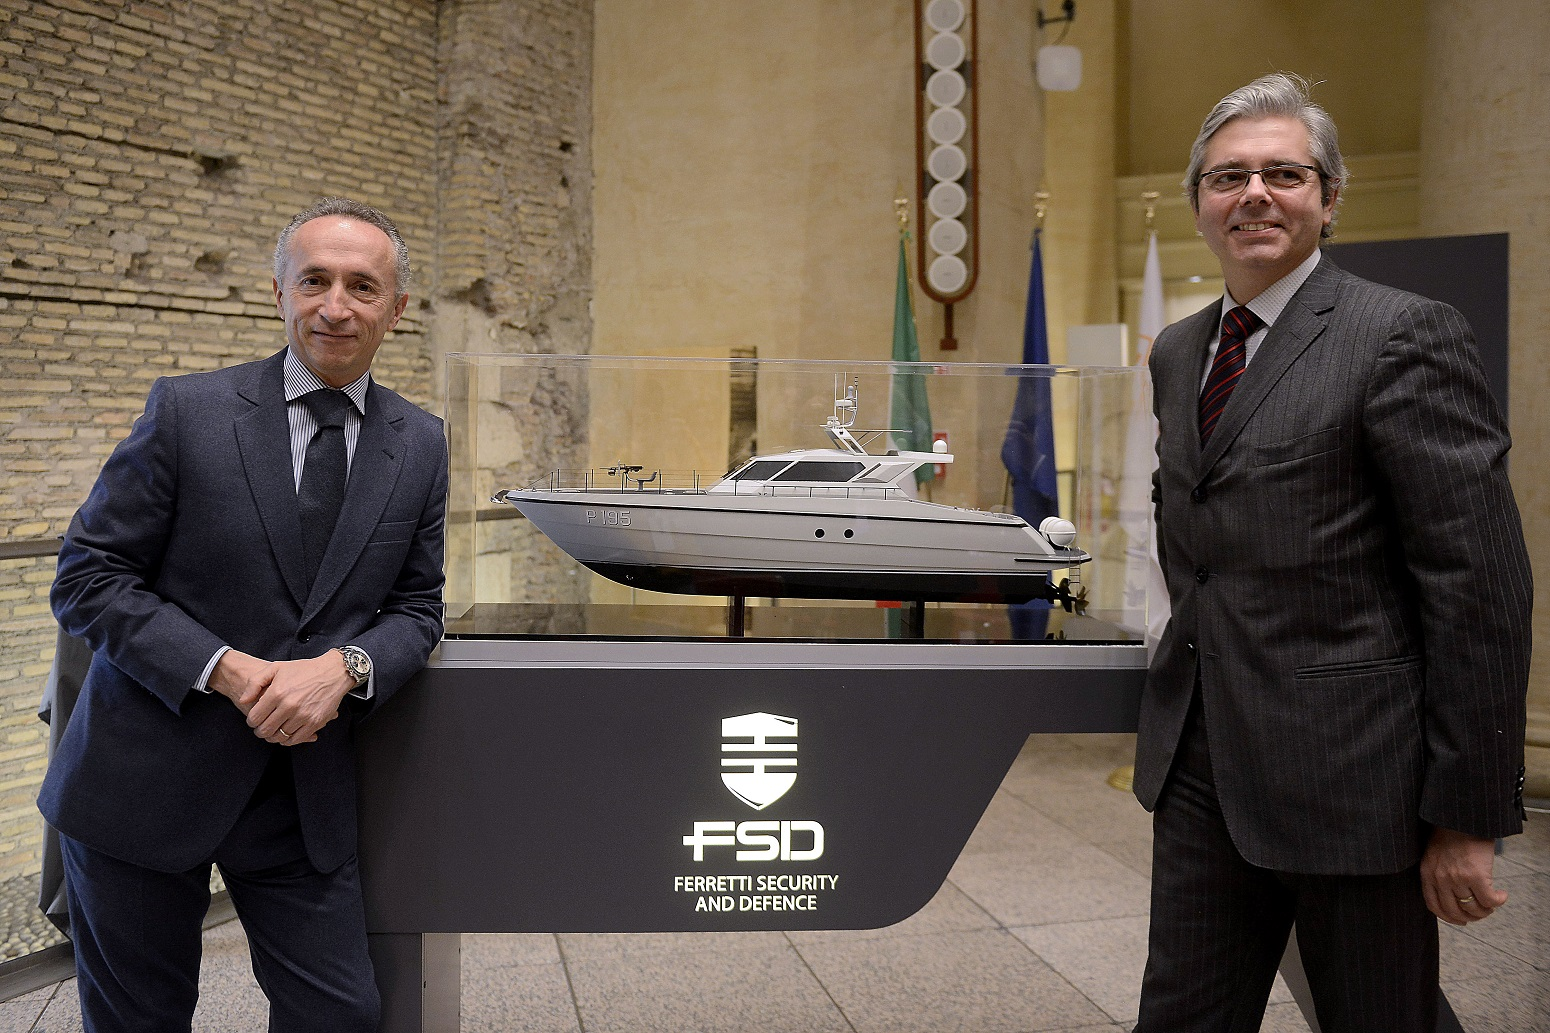 ferretti-security-and-defence-8